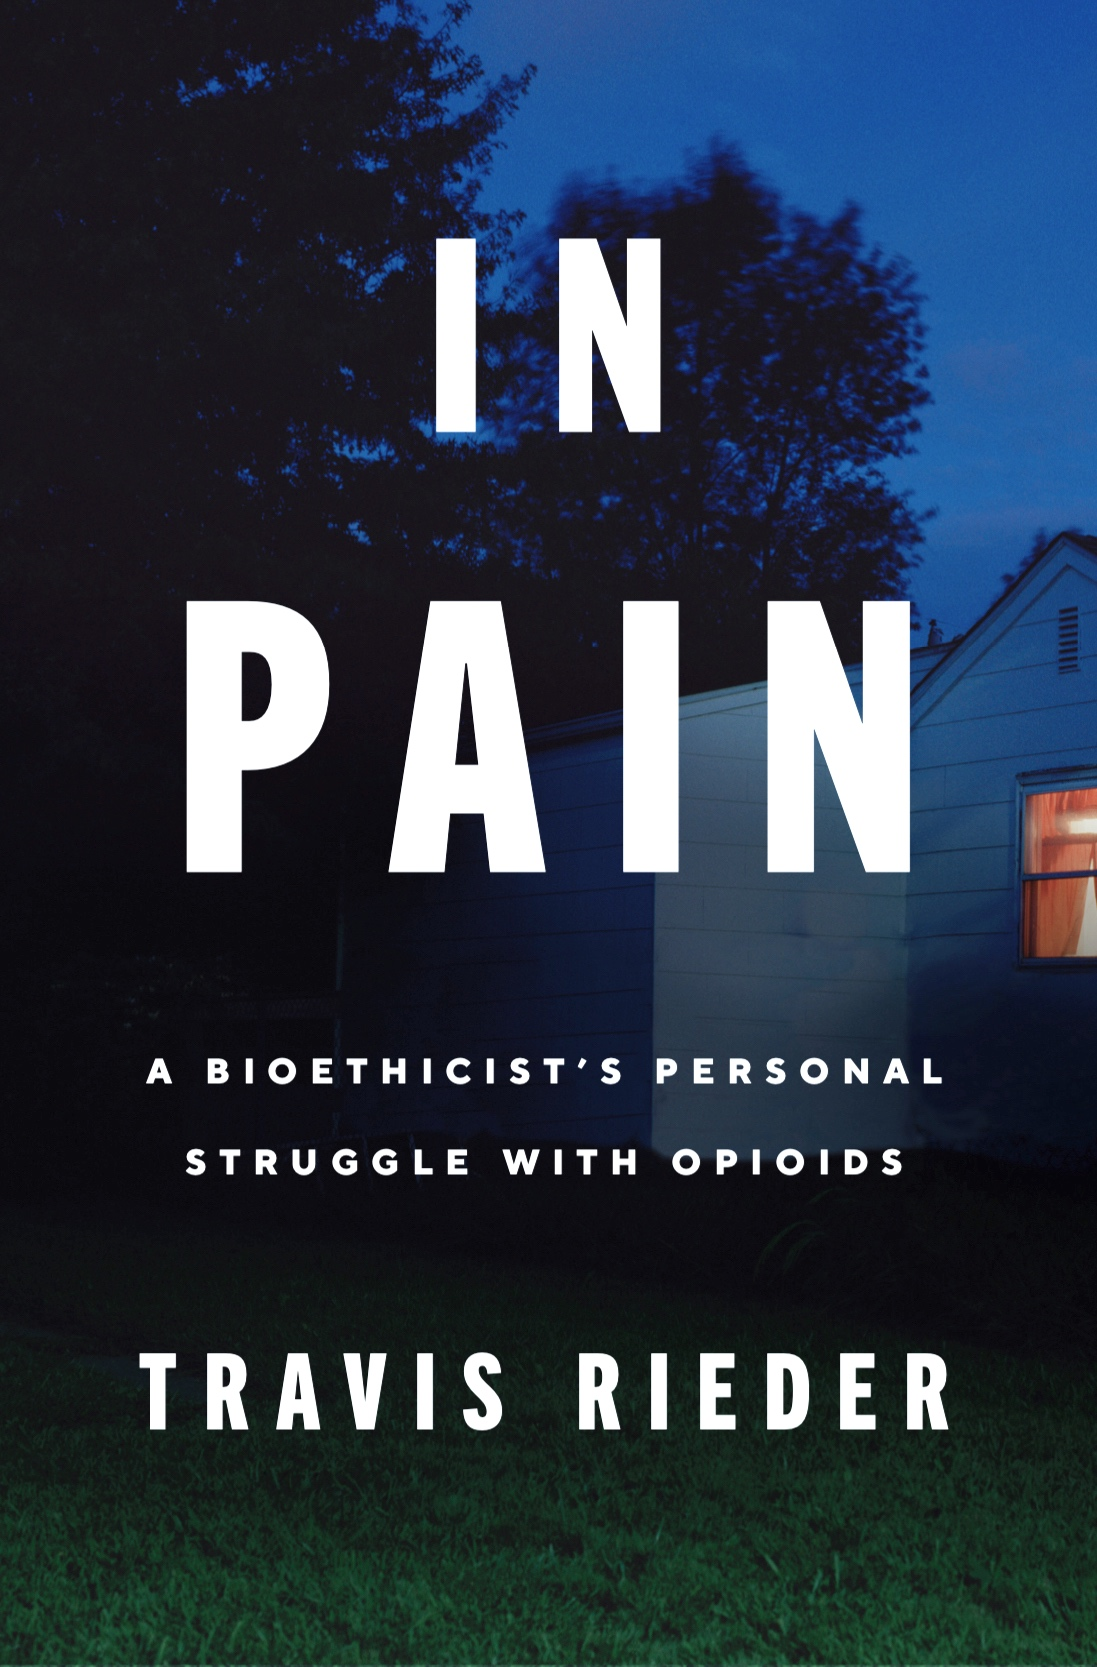 IN PAIN - In Pain: A Bioethicist's Personal Struggle with Opioids will be published by HarperCollins on June 18, 2019.